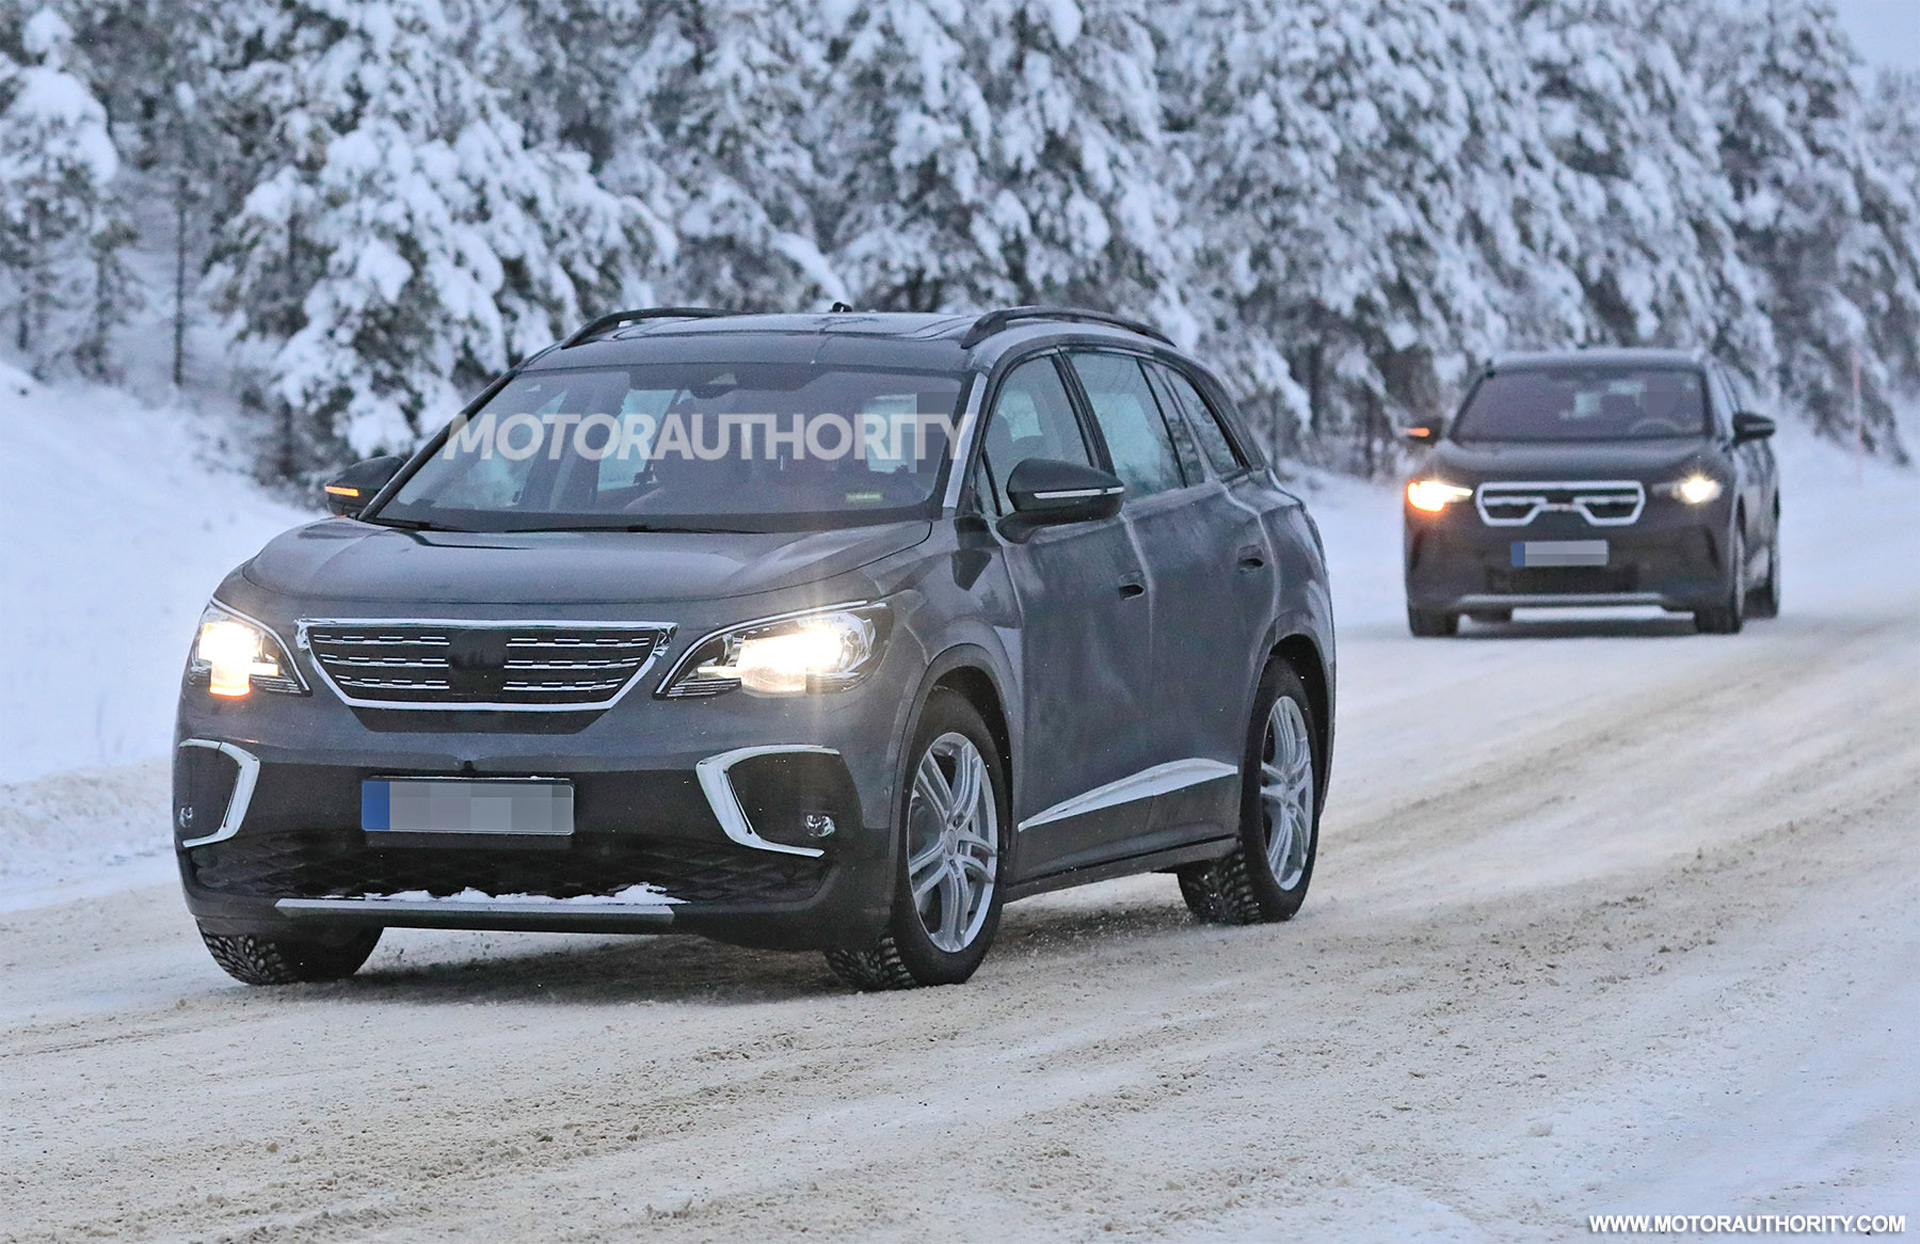 2022 Volkswagen ID.6 X spy shots: 7-seat electric crossover for Chinese market spotted